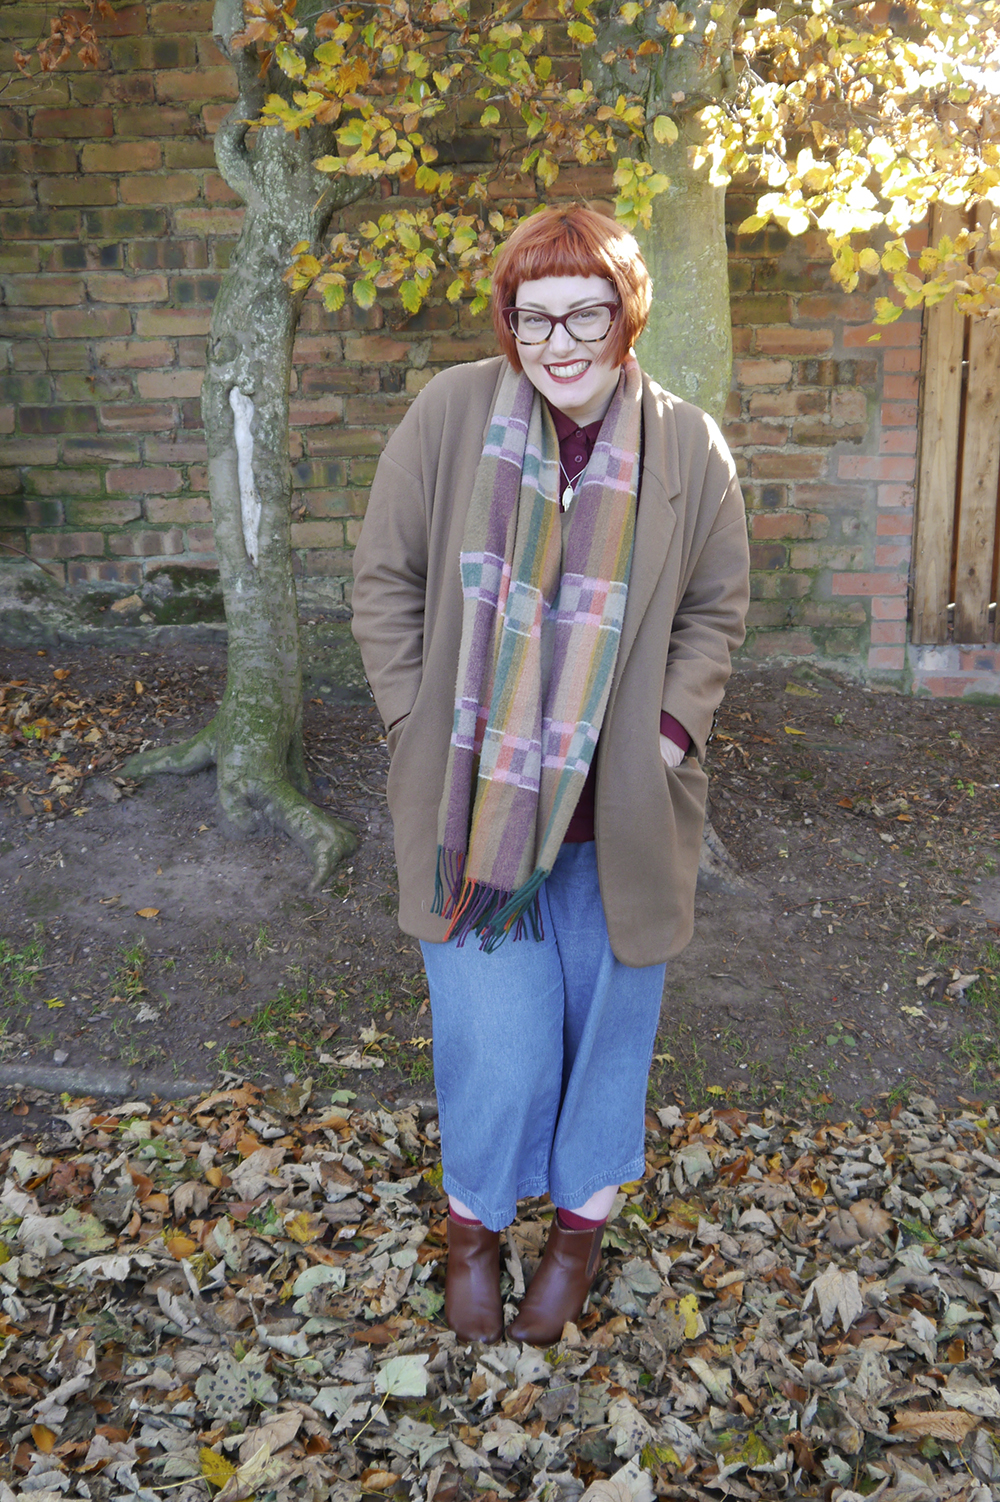 Scottish blogger Helen from Wardrobe Conversations dresses for the changing seasons